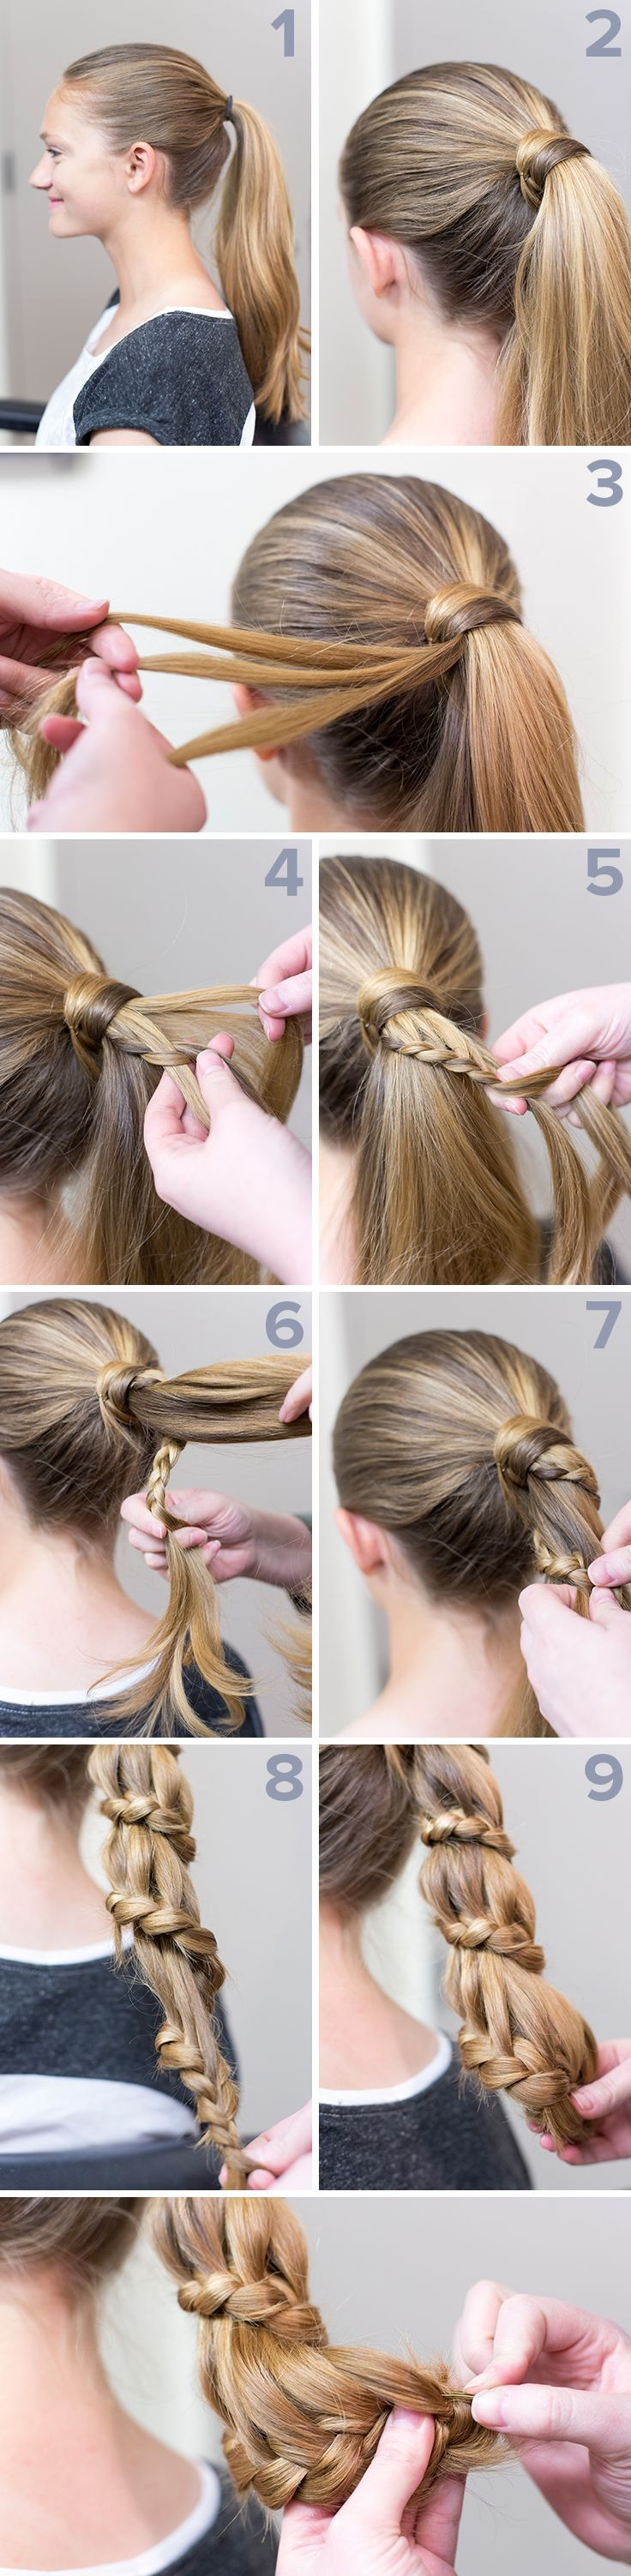 Sensational 1000 Ideas About Hairstyle For Kids On Pinterest Hairstyle Inspiration Daily Dogsangcom